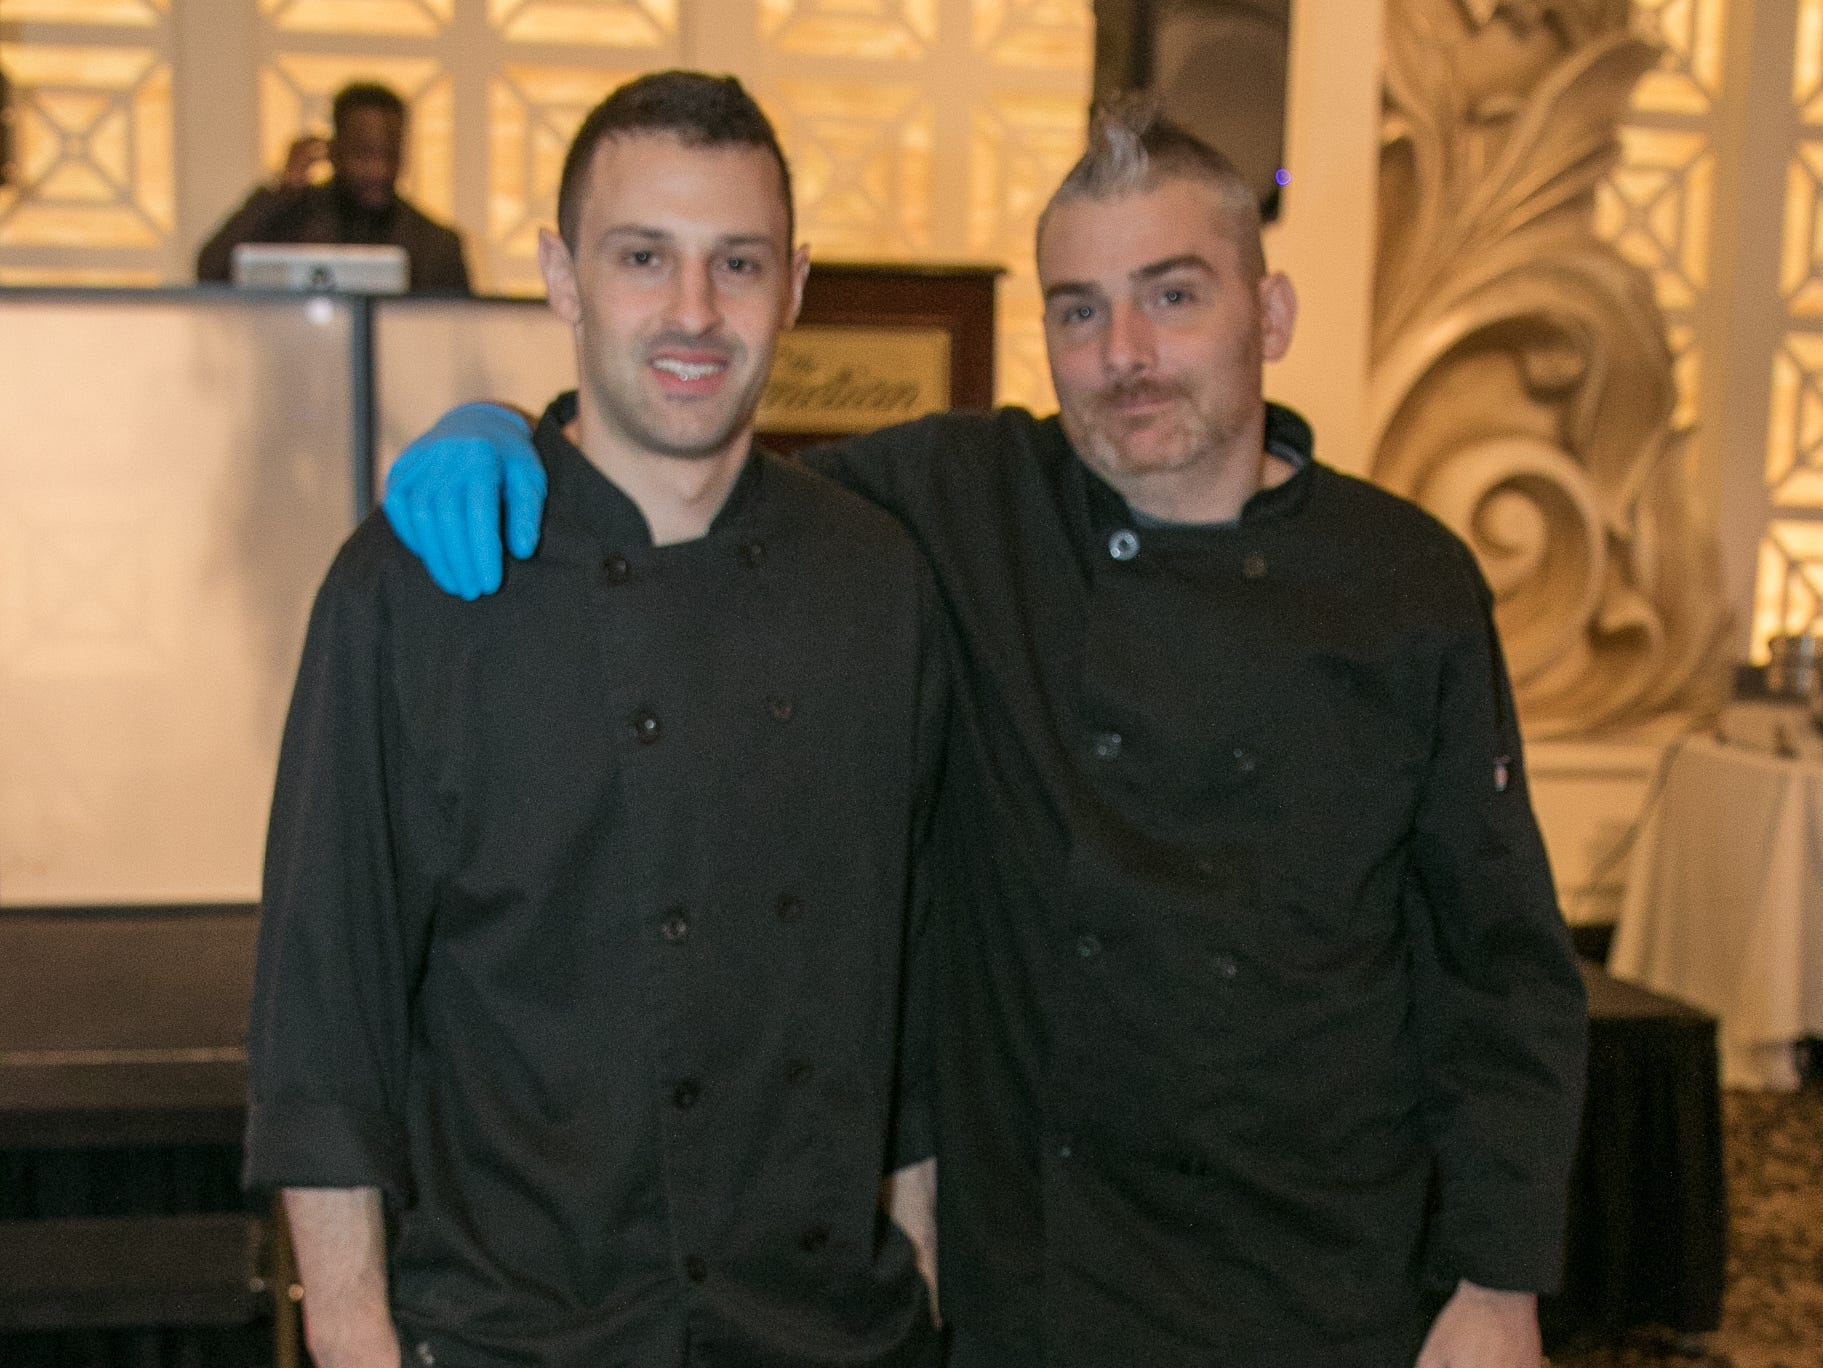 """Greg Baumel and Celebrity Chef Chris Holland. The New Bridge Medical Center Foundation held its 10th Annual """"A Taste of Bergen"""" at The Venetian in Garfield. The evening featured celebrity chef Chris Holland, the 2017 Grand Champion of the Food Network's """"Chopped."""" 11/12/2018"""